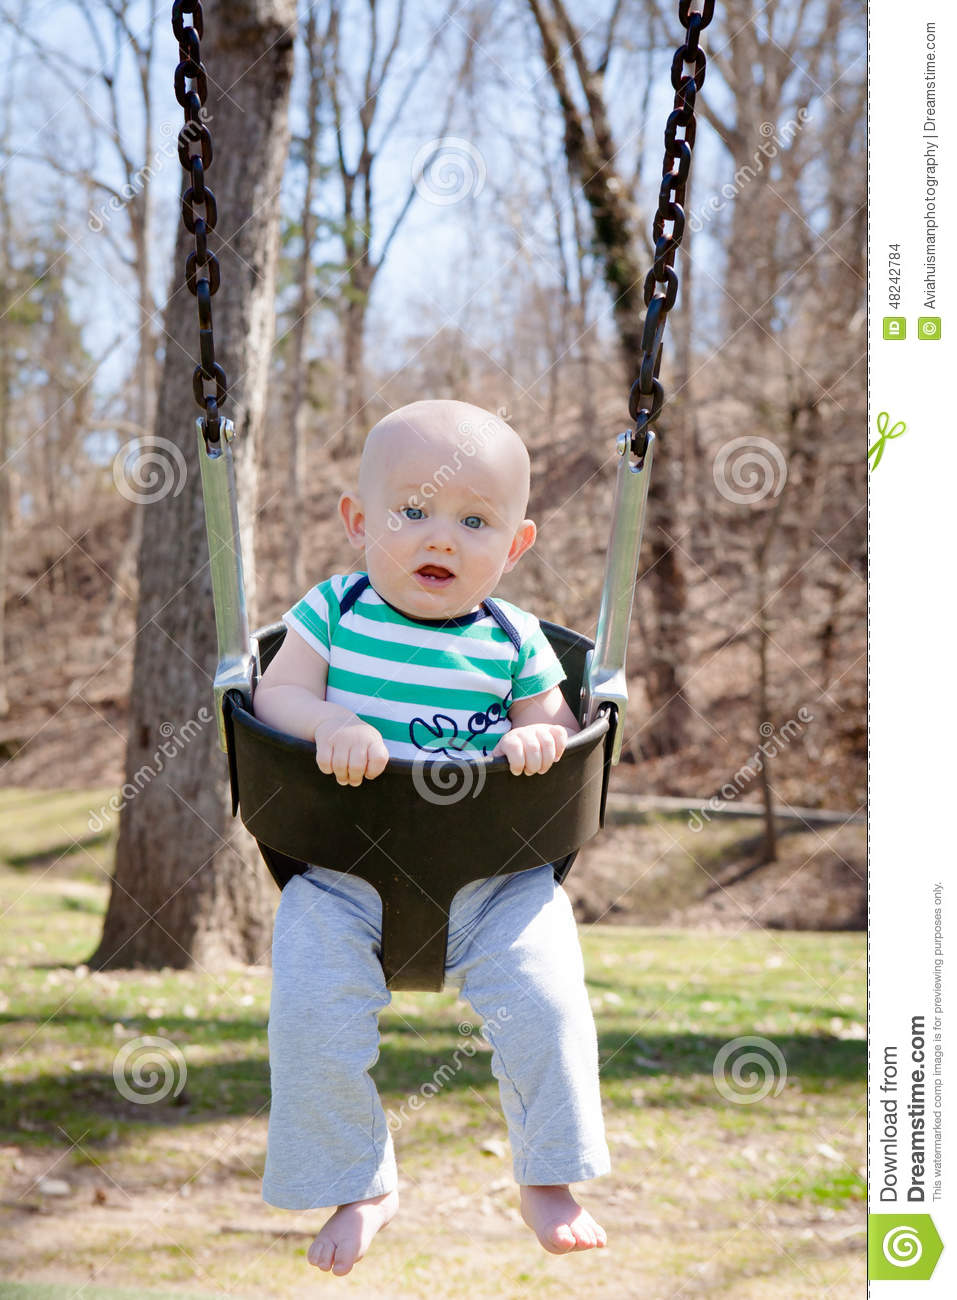 Swinging the baby